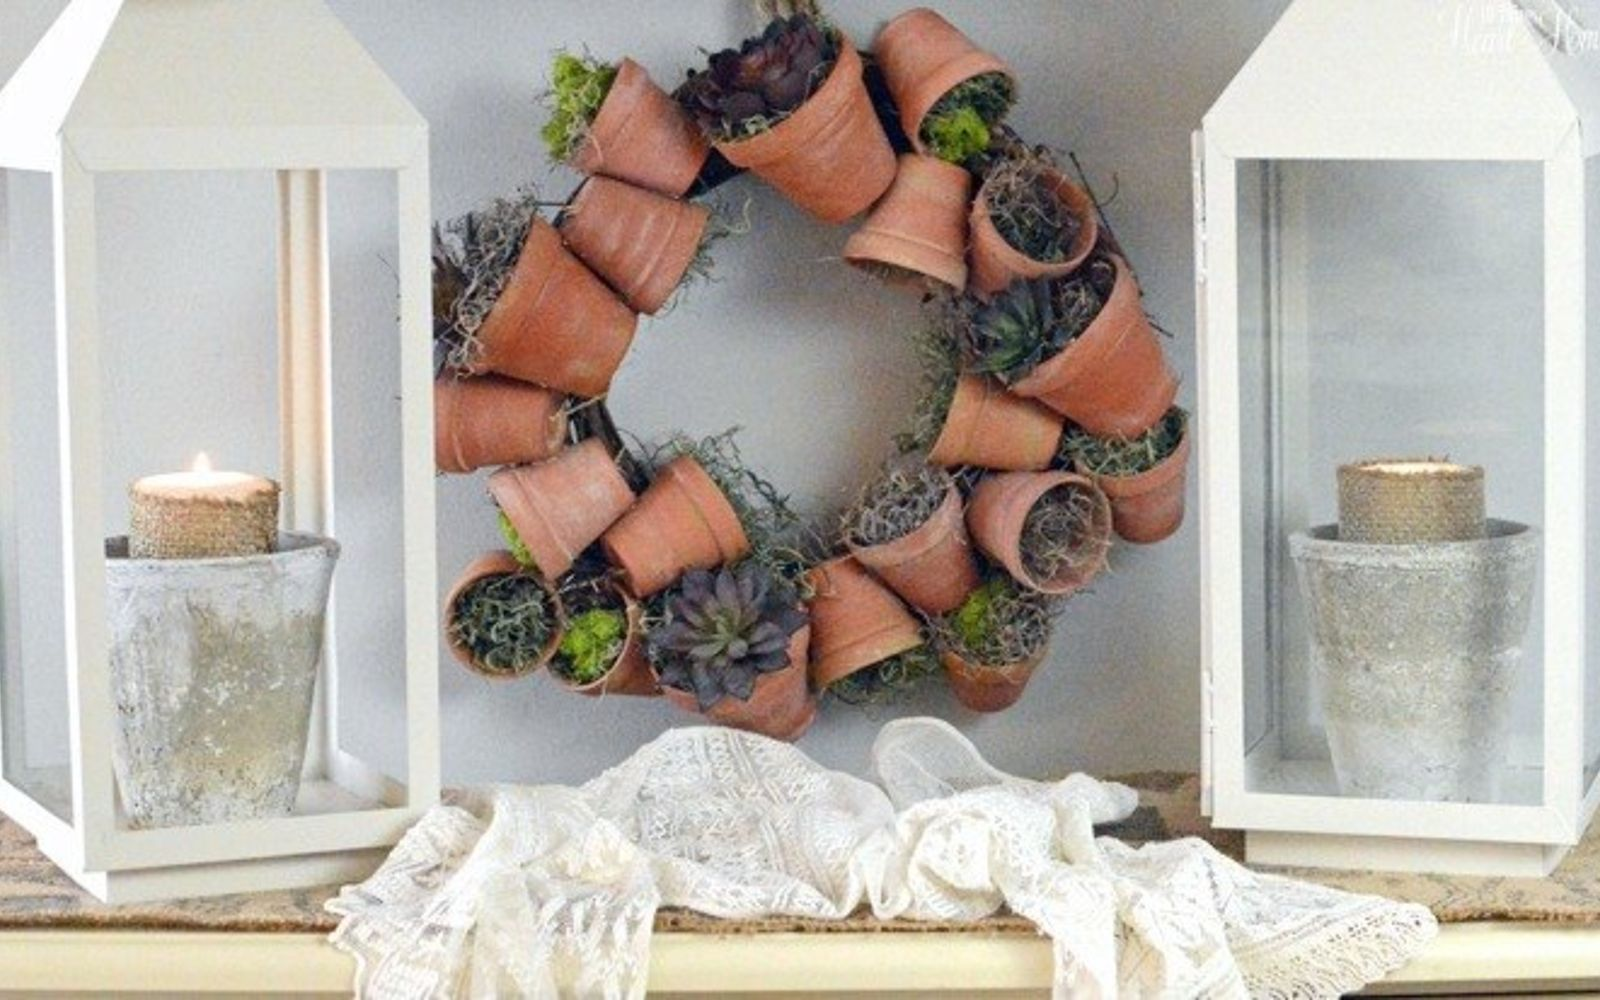 s 31 gorgeous spring wreaths that will make your neighbors smile, crafts, seasonal holiday decor, wreaths, String together live flower pots